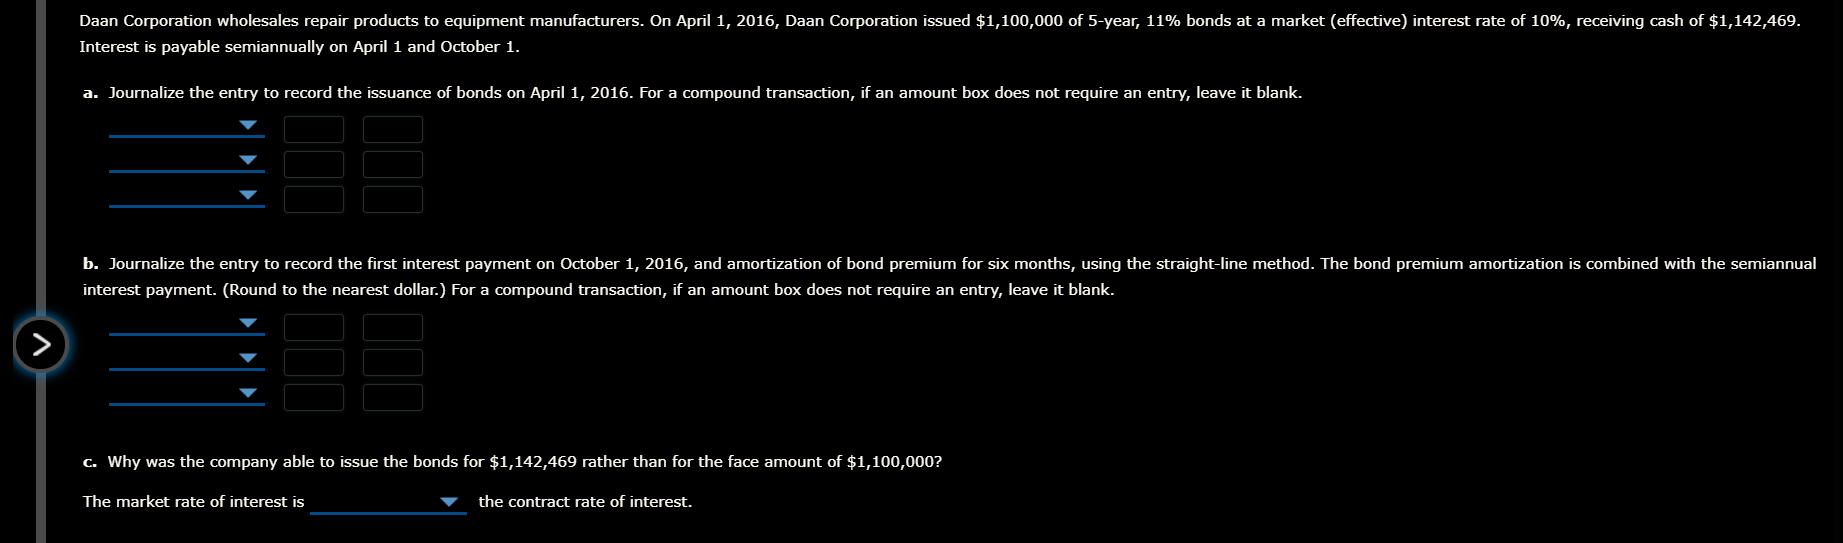 Daan Corporation wholesales repair products to equipment manufacturers. On April 1, 2016, Daan Corporation issued $1,100,000 of 5-year, 11% bonds at a market (effective) interest rate of 10%, receiving cash of $1,142,469. Interest is payable semiannually on April 1 and October 1. a. Journalize the entry to record the issuance of bonds on April 1, 2016. For a compound transaction, if an amount box does not require an entry, leave it blank. b. Journalize the entry to record the first interest payment on October 1, 2016, and amortization of bond premium for six months, using the straight-line method. The bond premium amortization is combined with the semiannual interest payment. (Round to the nearest dollar.) For a compound transaction, if an amount box does not require an entry, leave it blank. C. Why was the company able to issue the bonds for $1,142,469 rather than for the face amount of $1,100,000? The market rate of interest is the contract rate of interest.